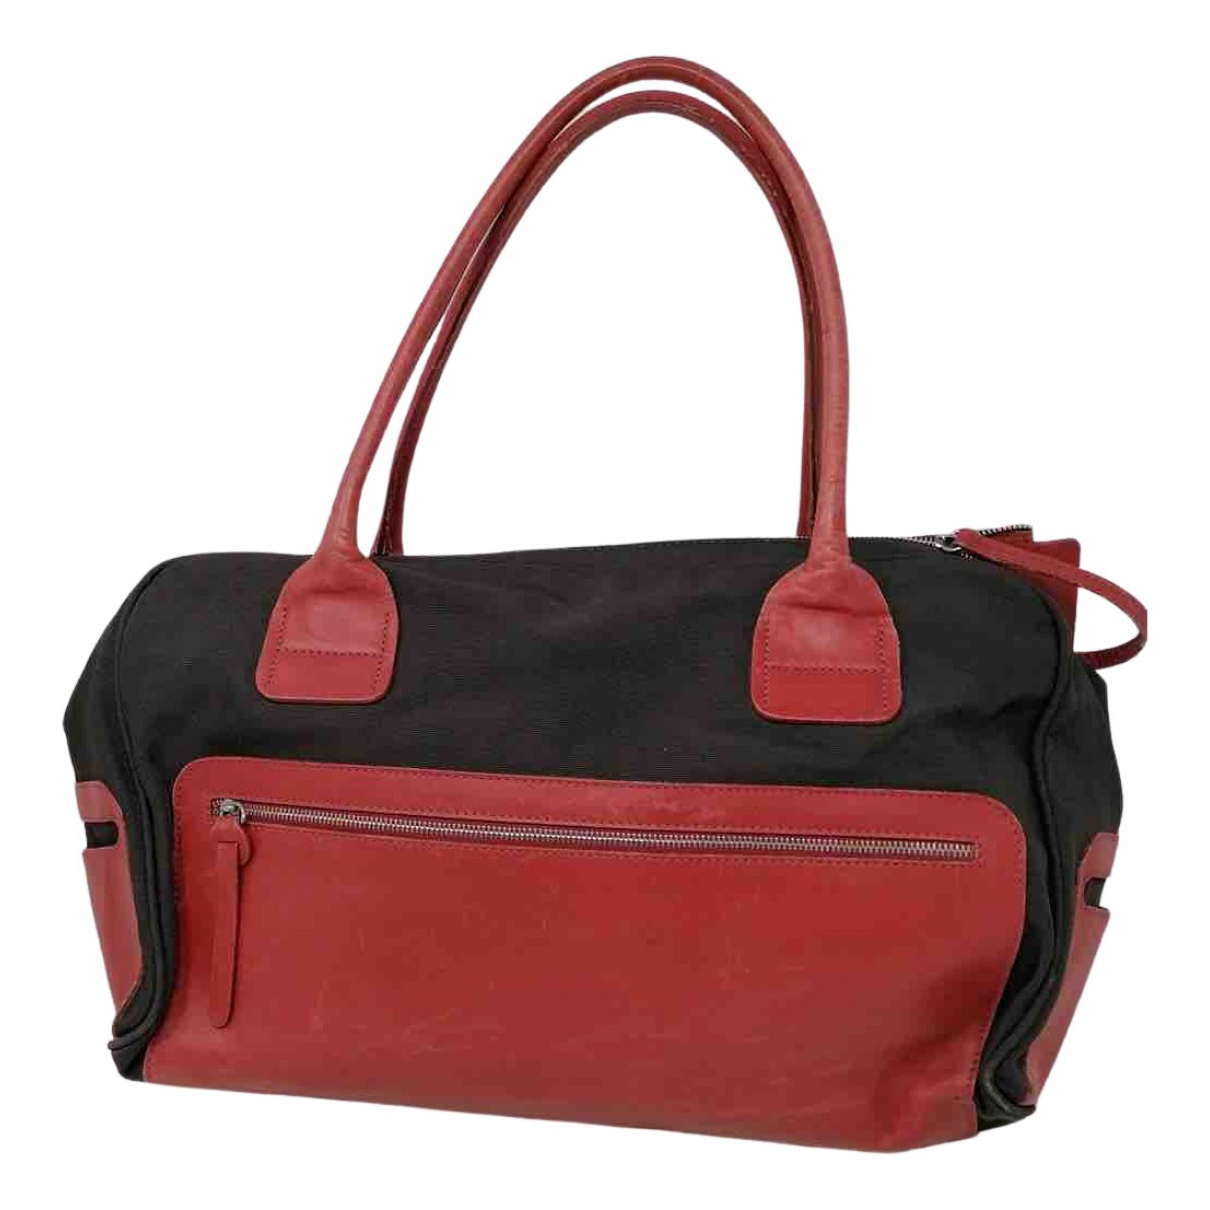 Hogan N Multicolour Leather handbag for Women N